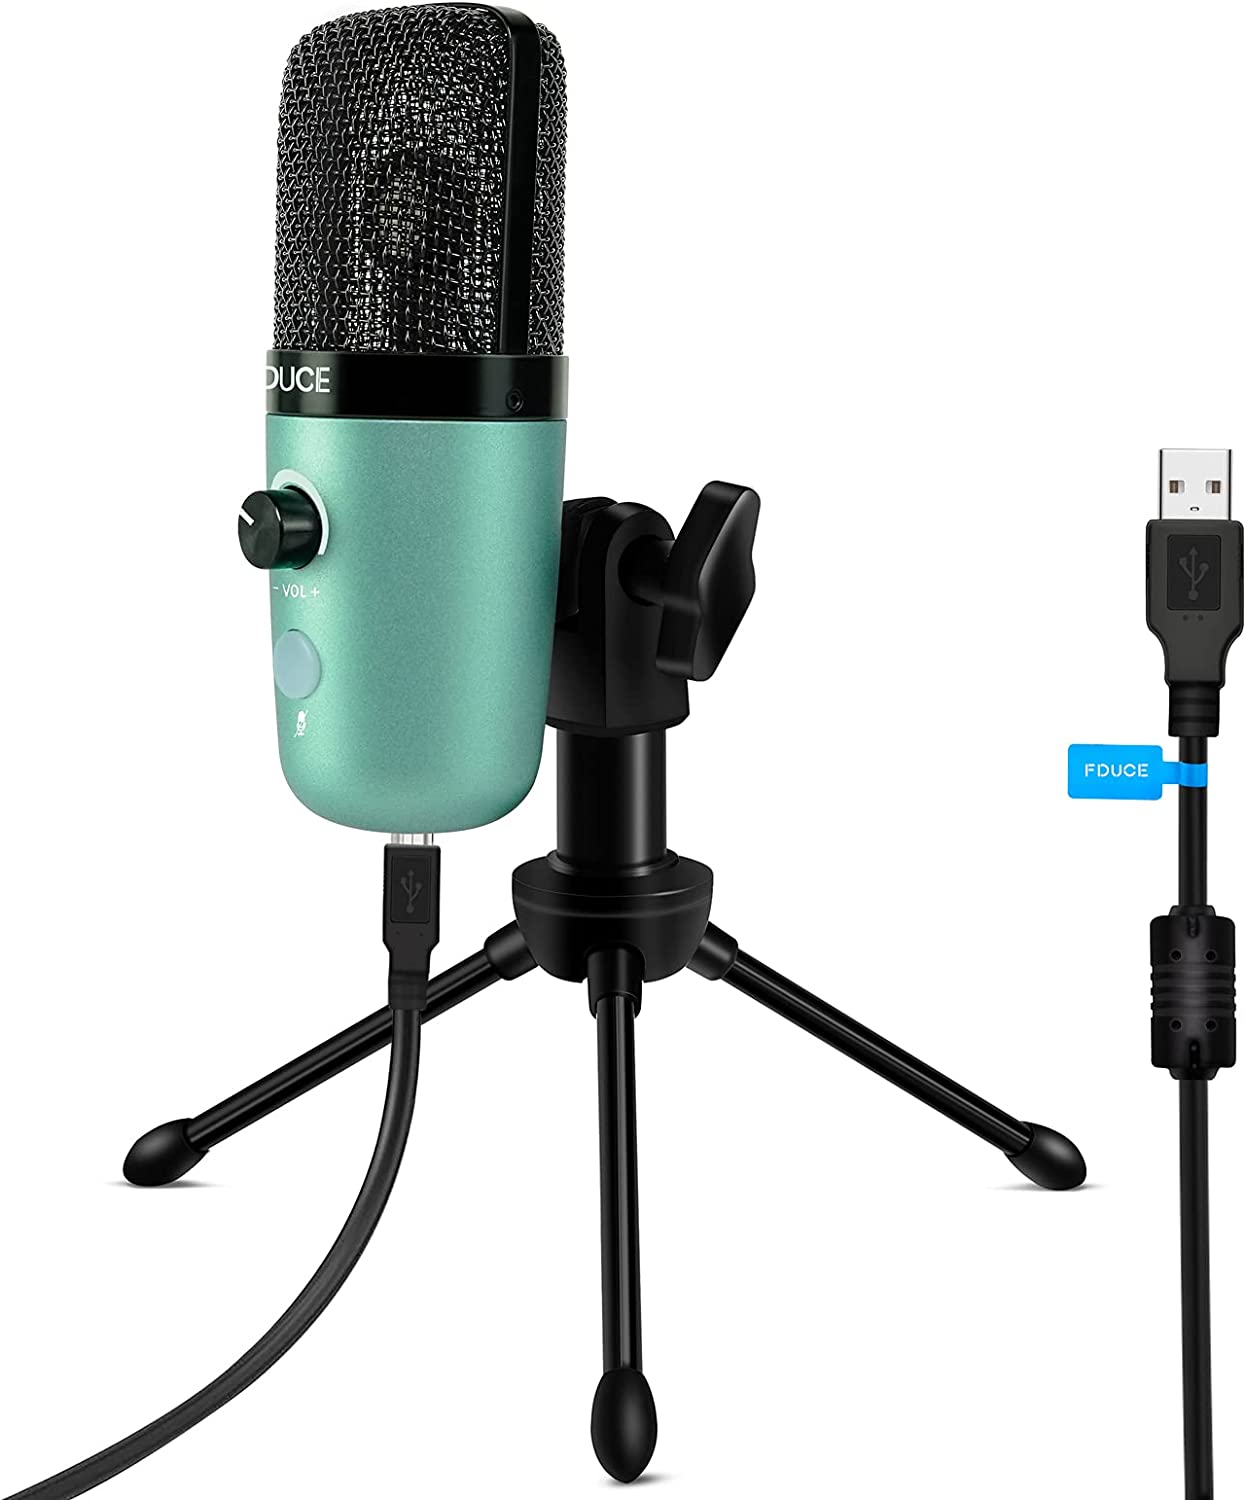 USB Plug&Play Computer Microphone, FDUCE Professional Studio PC Mic with Tripod for Gaming, Streaming, Podcast, Chatting, YouTube on Mac & Windows(Mint Green)